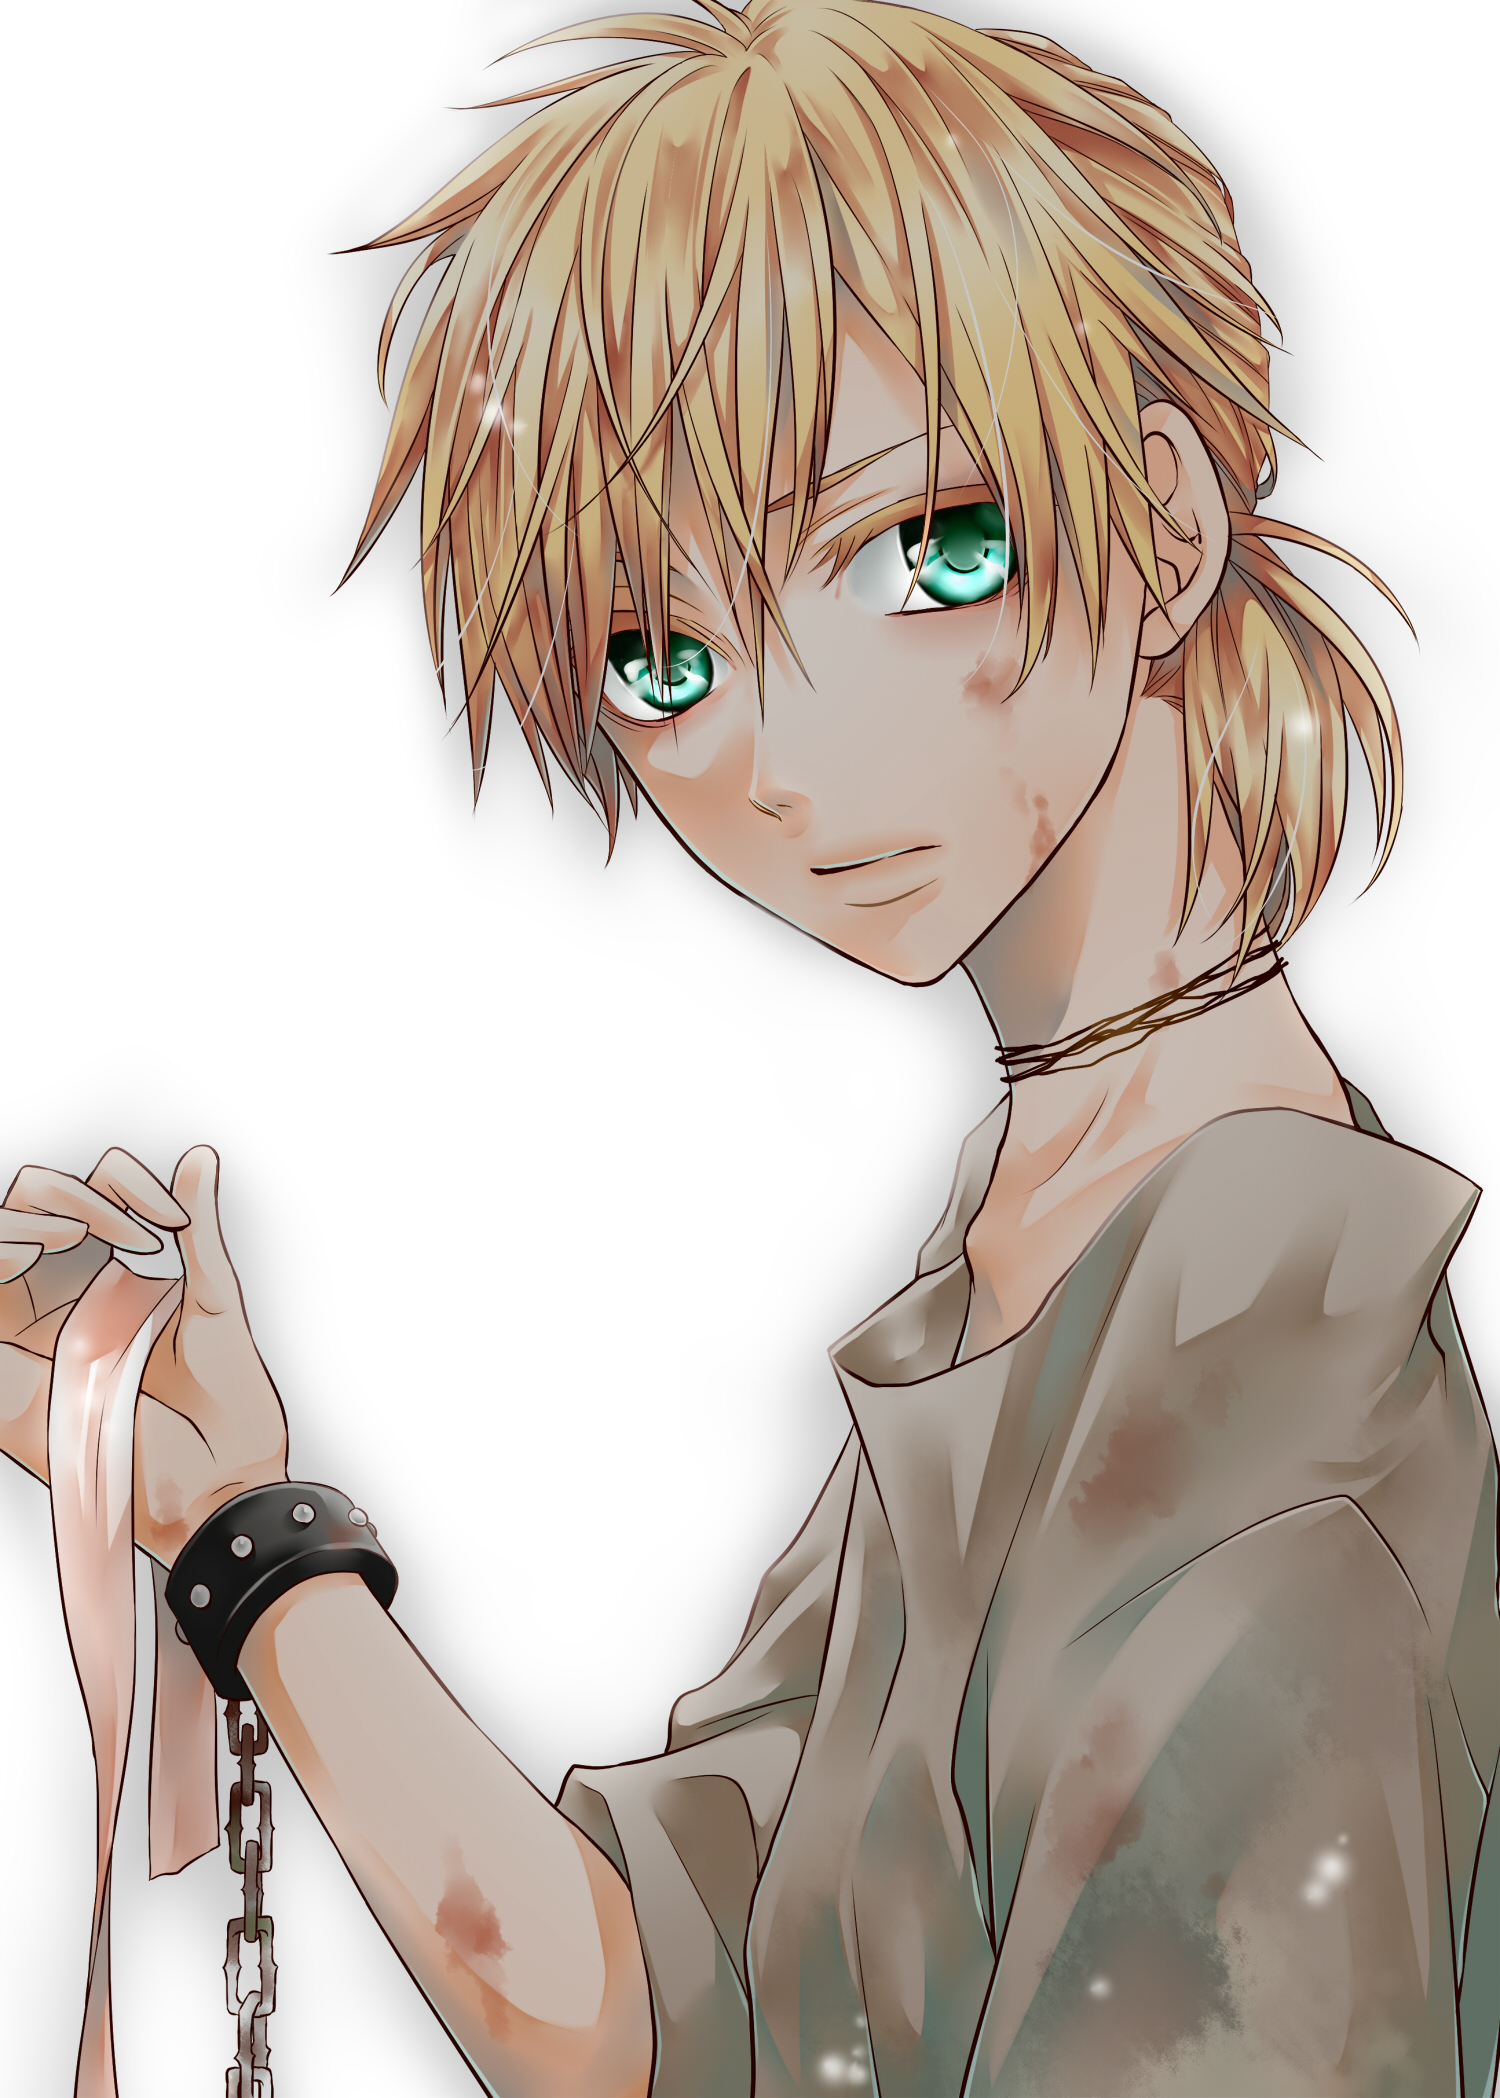 Anime boy with blonde hair and blue eyes